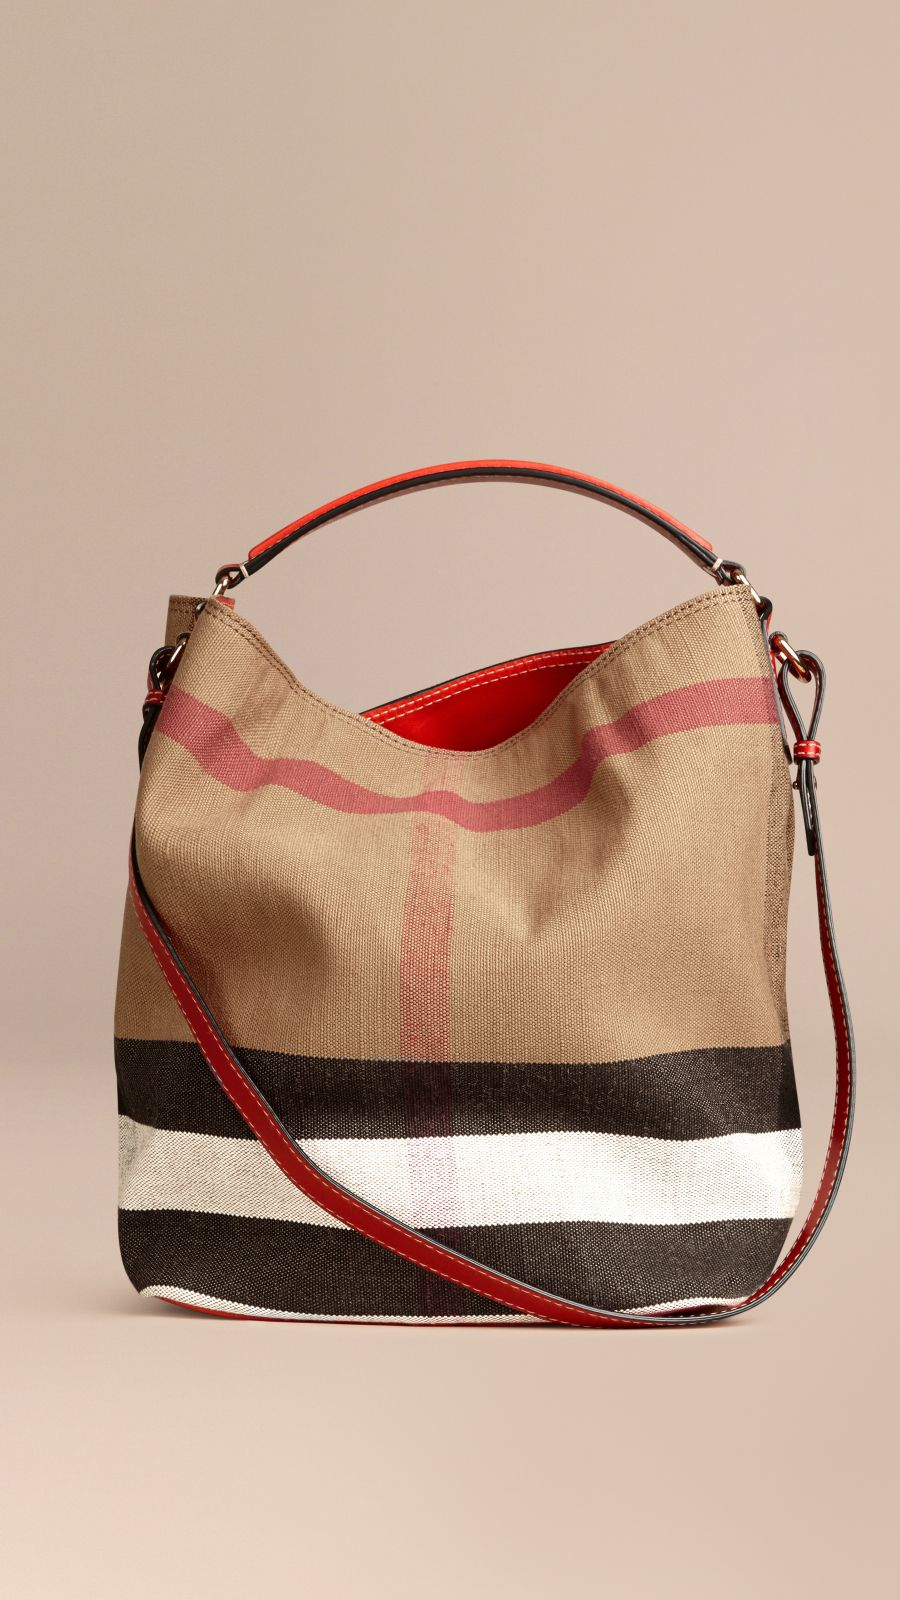 Cadmium red The Medium Ashby in Canvas Check and Leather Cadmium Red - Image 7